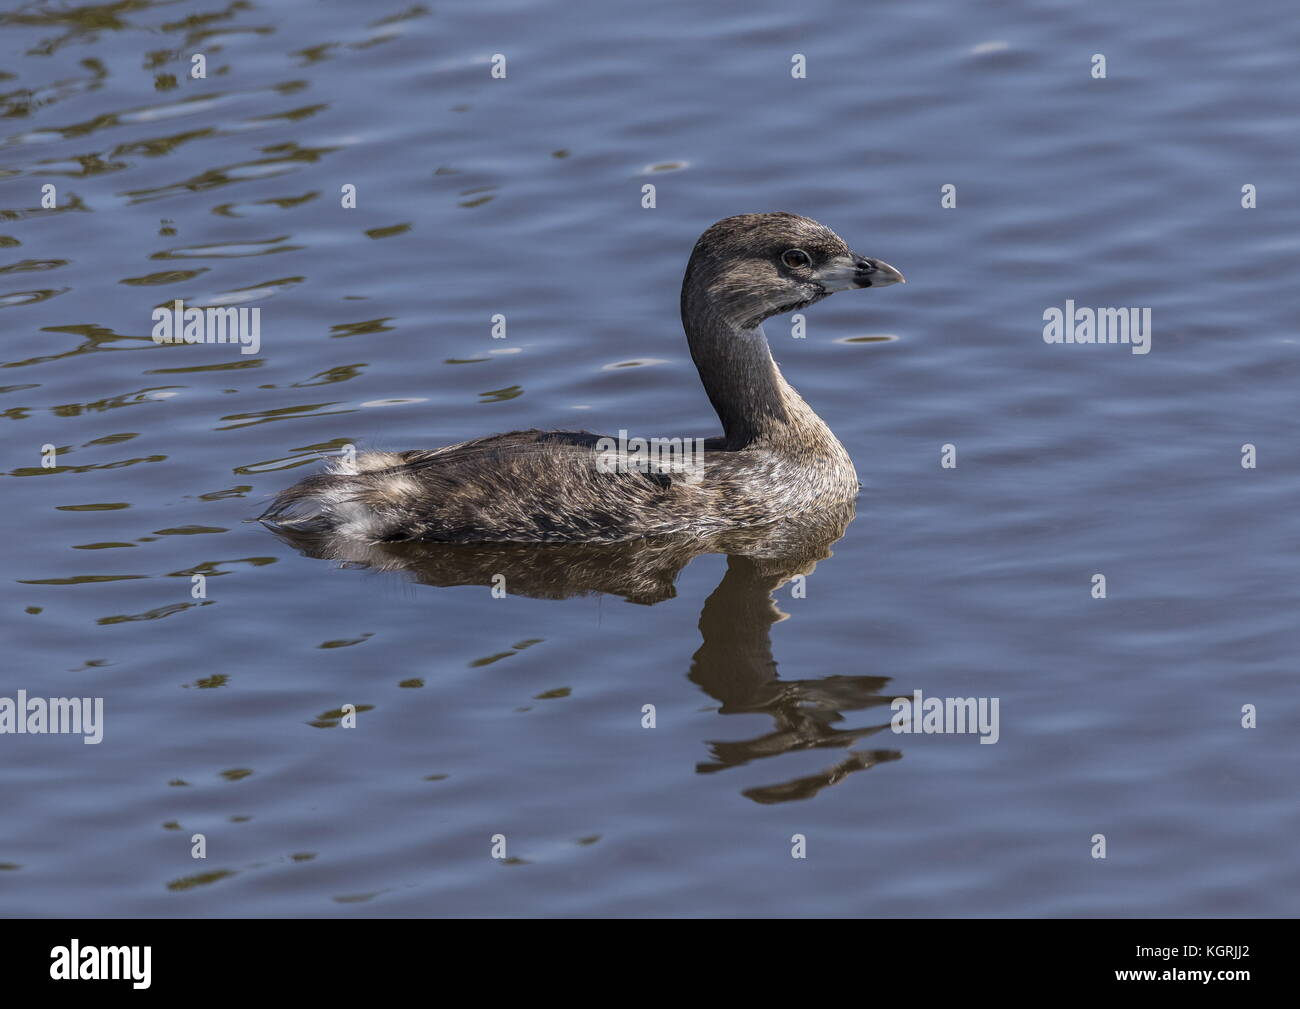 Pied-billed grebe, Podilymbus podiceps, on water surface after diving. Florida, winter. - Stock Image